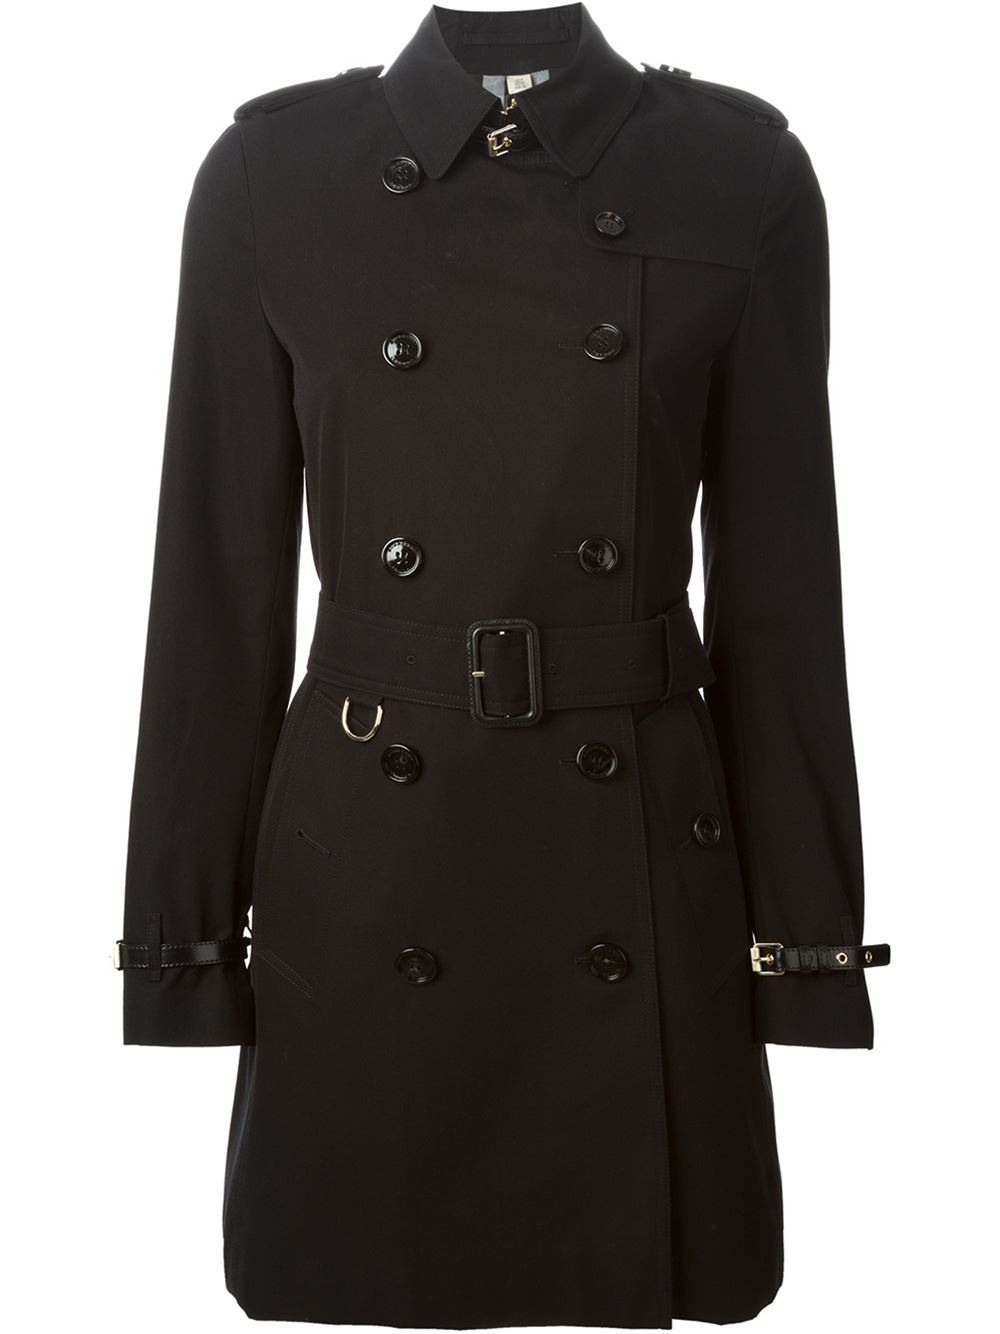 Burberry Belted Trench Coat in Black